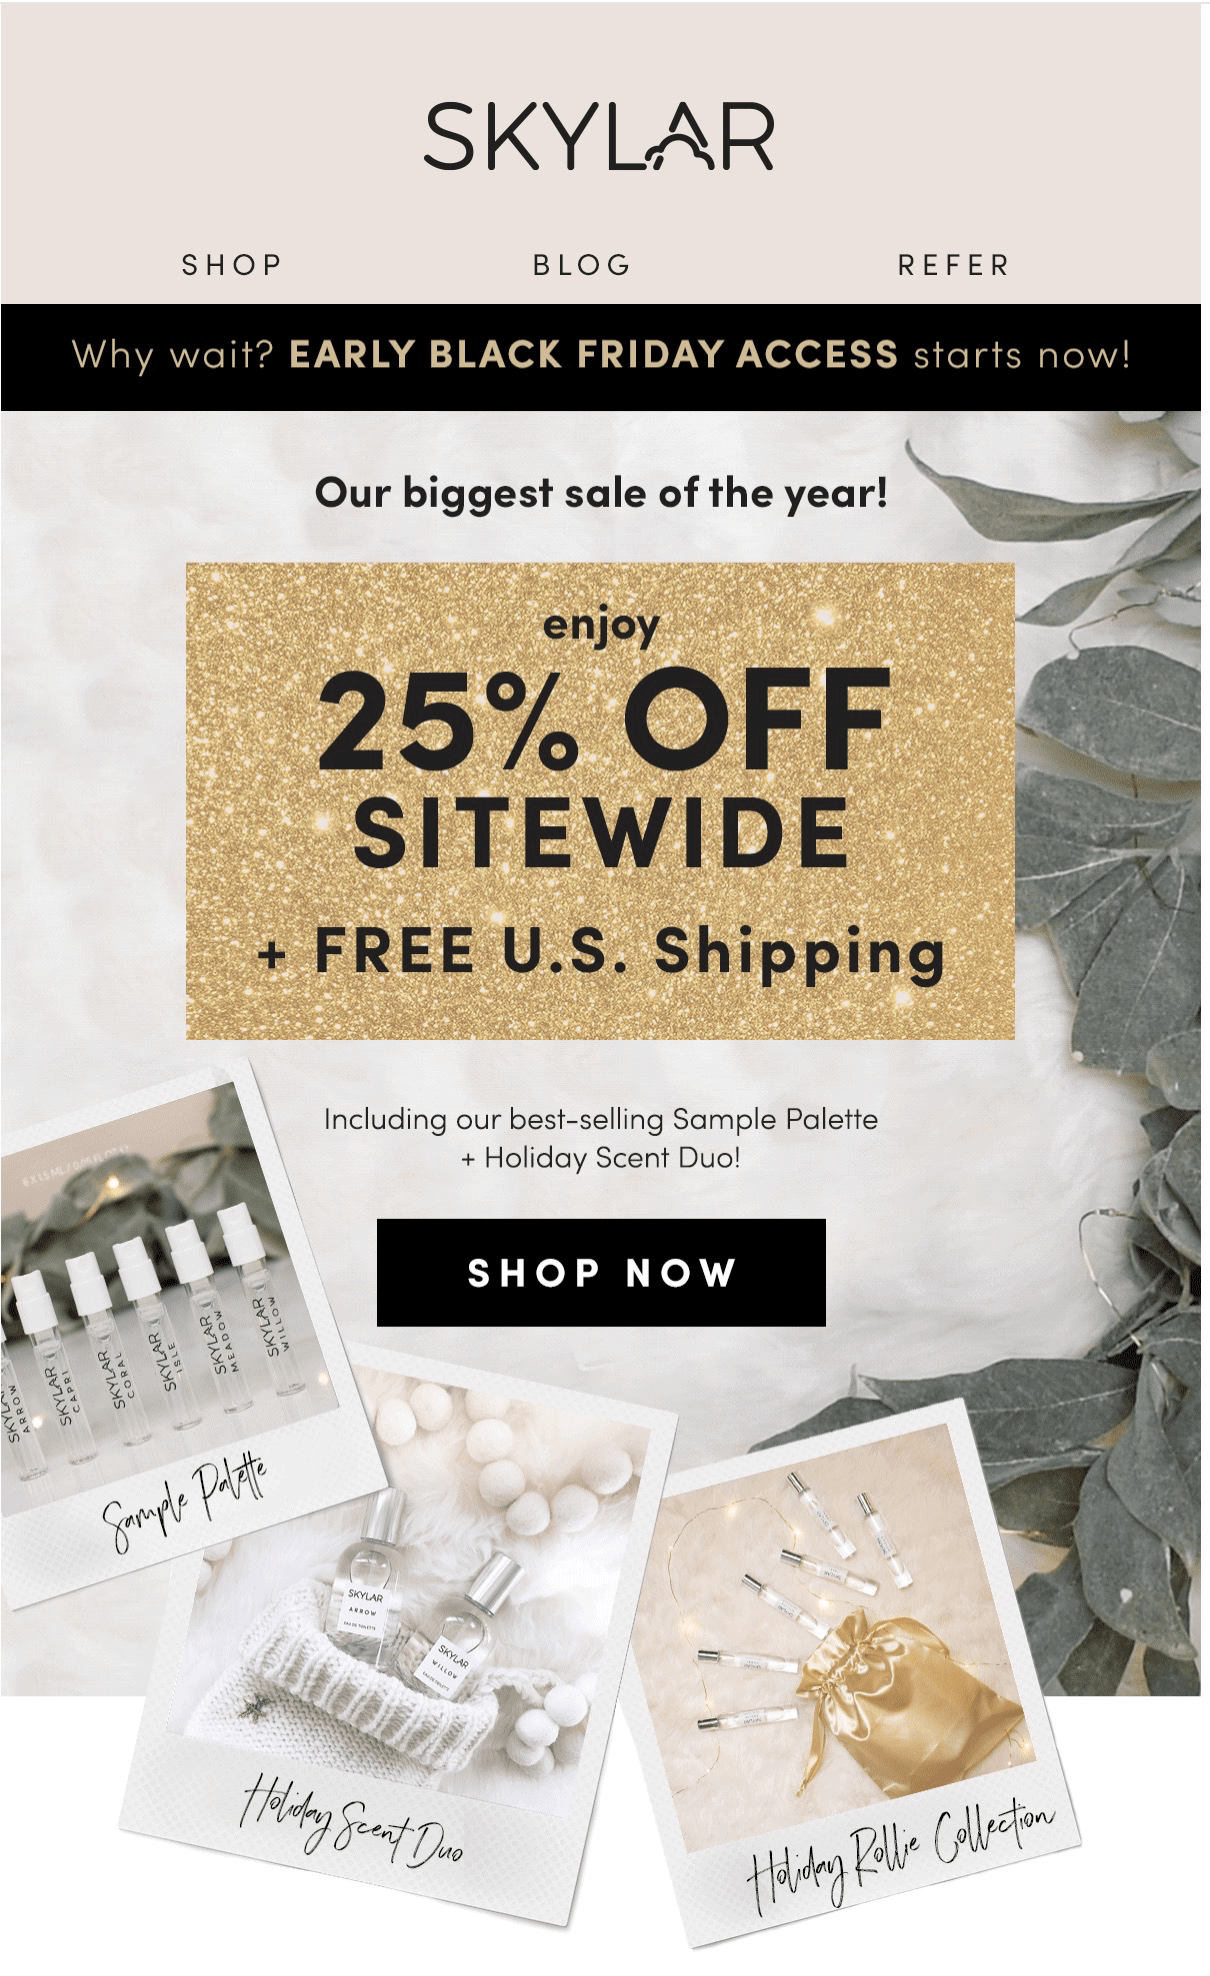 Skylar Early Access Black Friday 2018 - Save 25% Off Sitewide + FREE shipping! - hello subscription